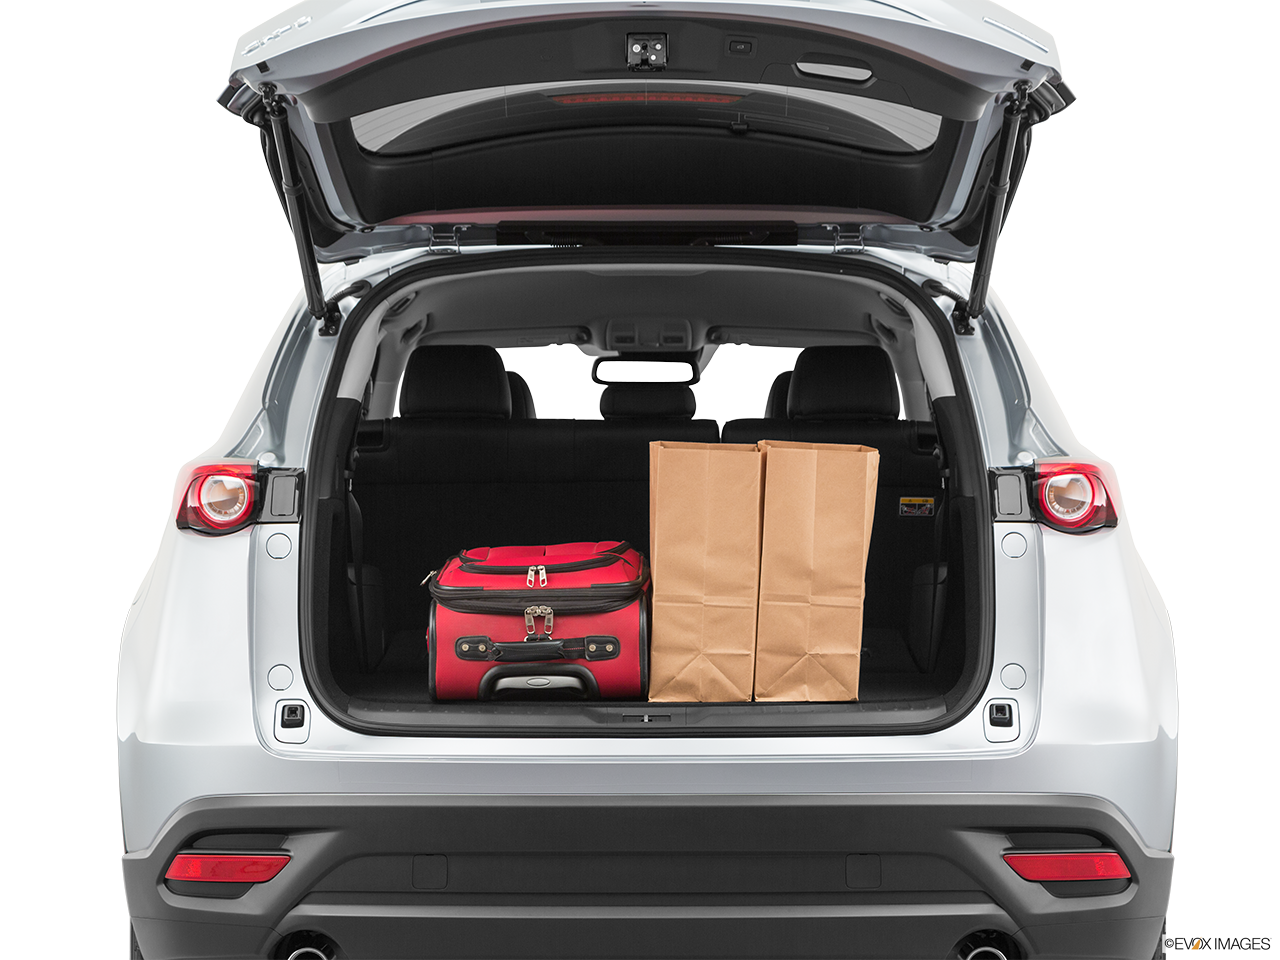 2020 Mazda CX-9 Trunk Space